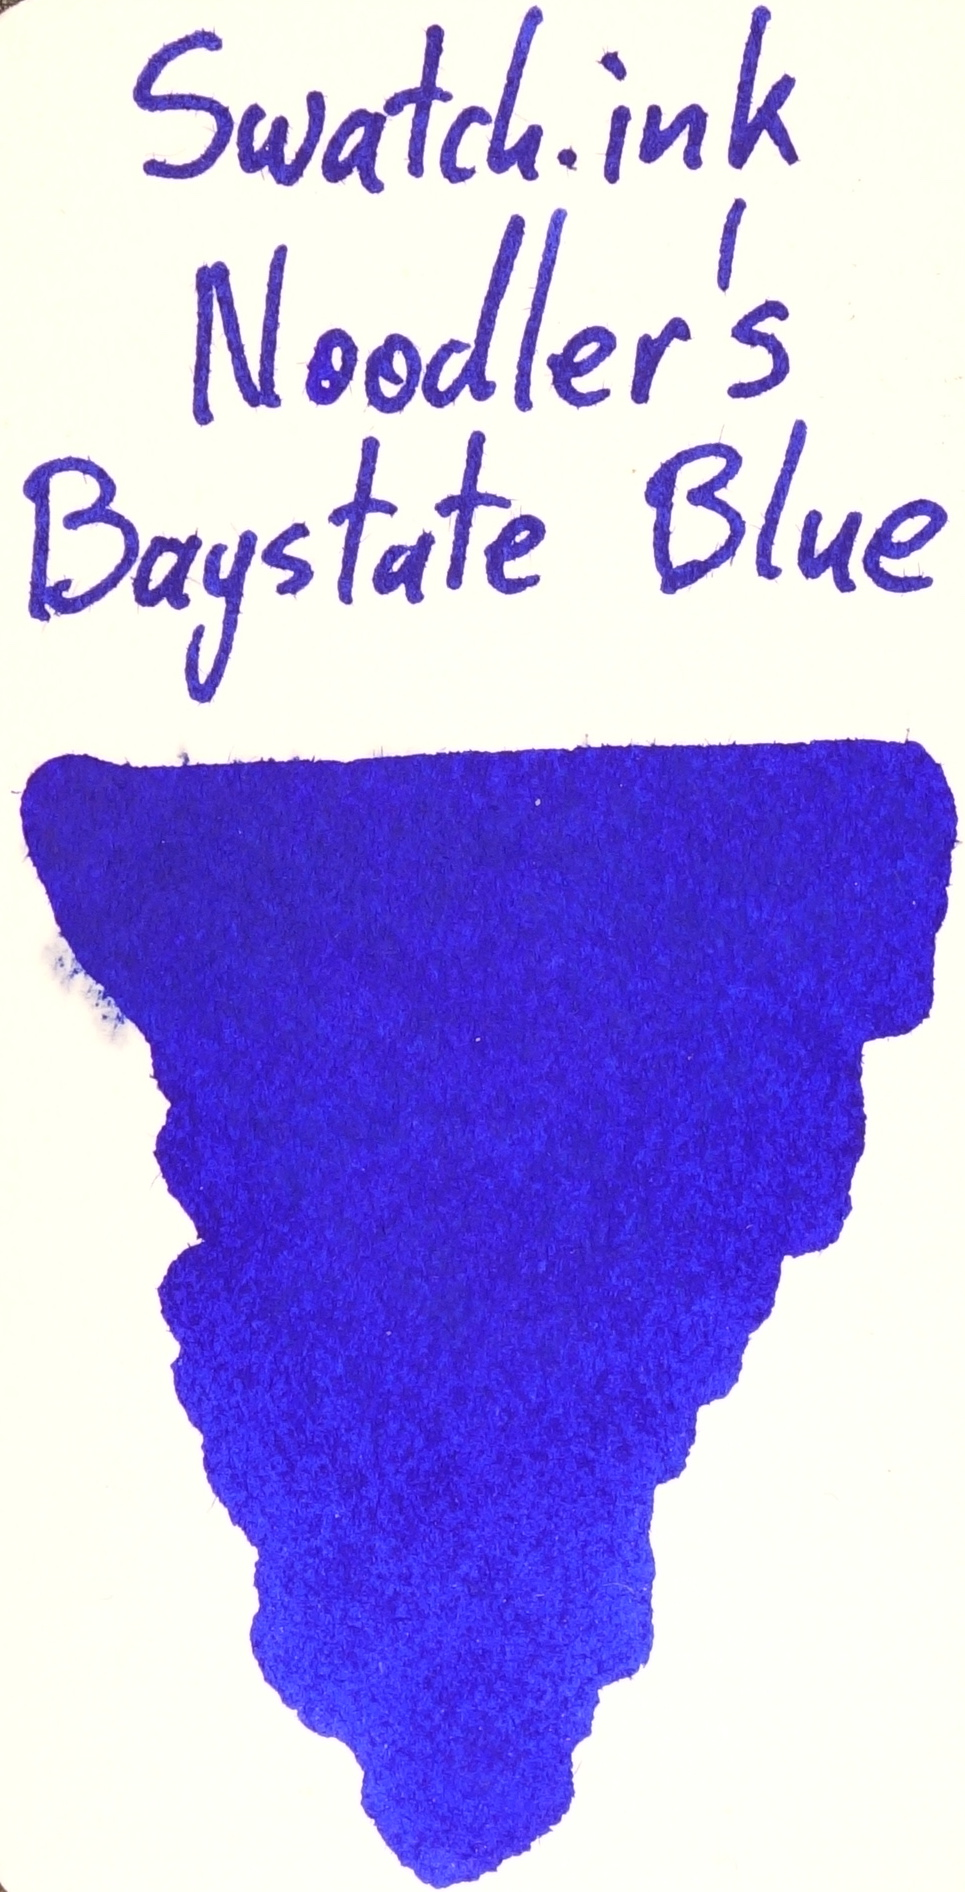 Noodler's Baystate Blue Swatch.ink.JPG